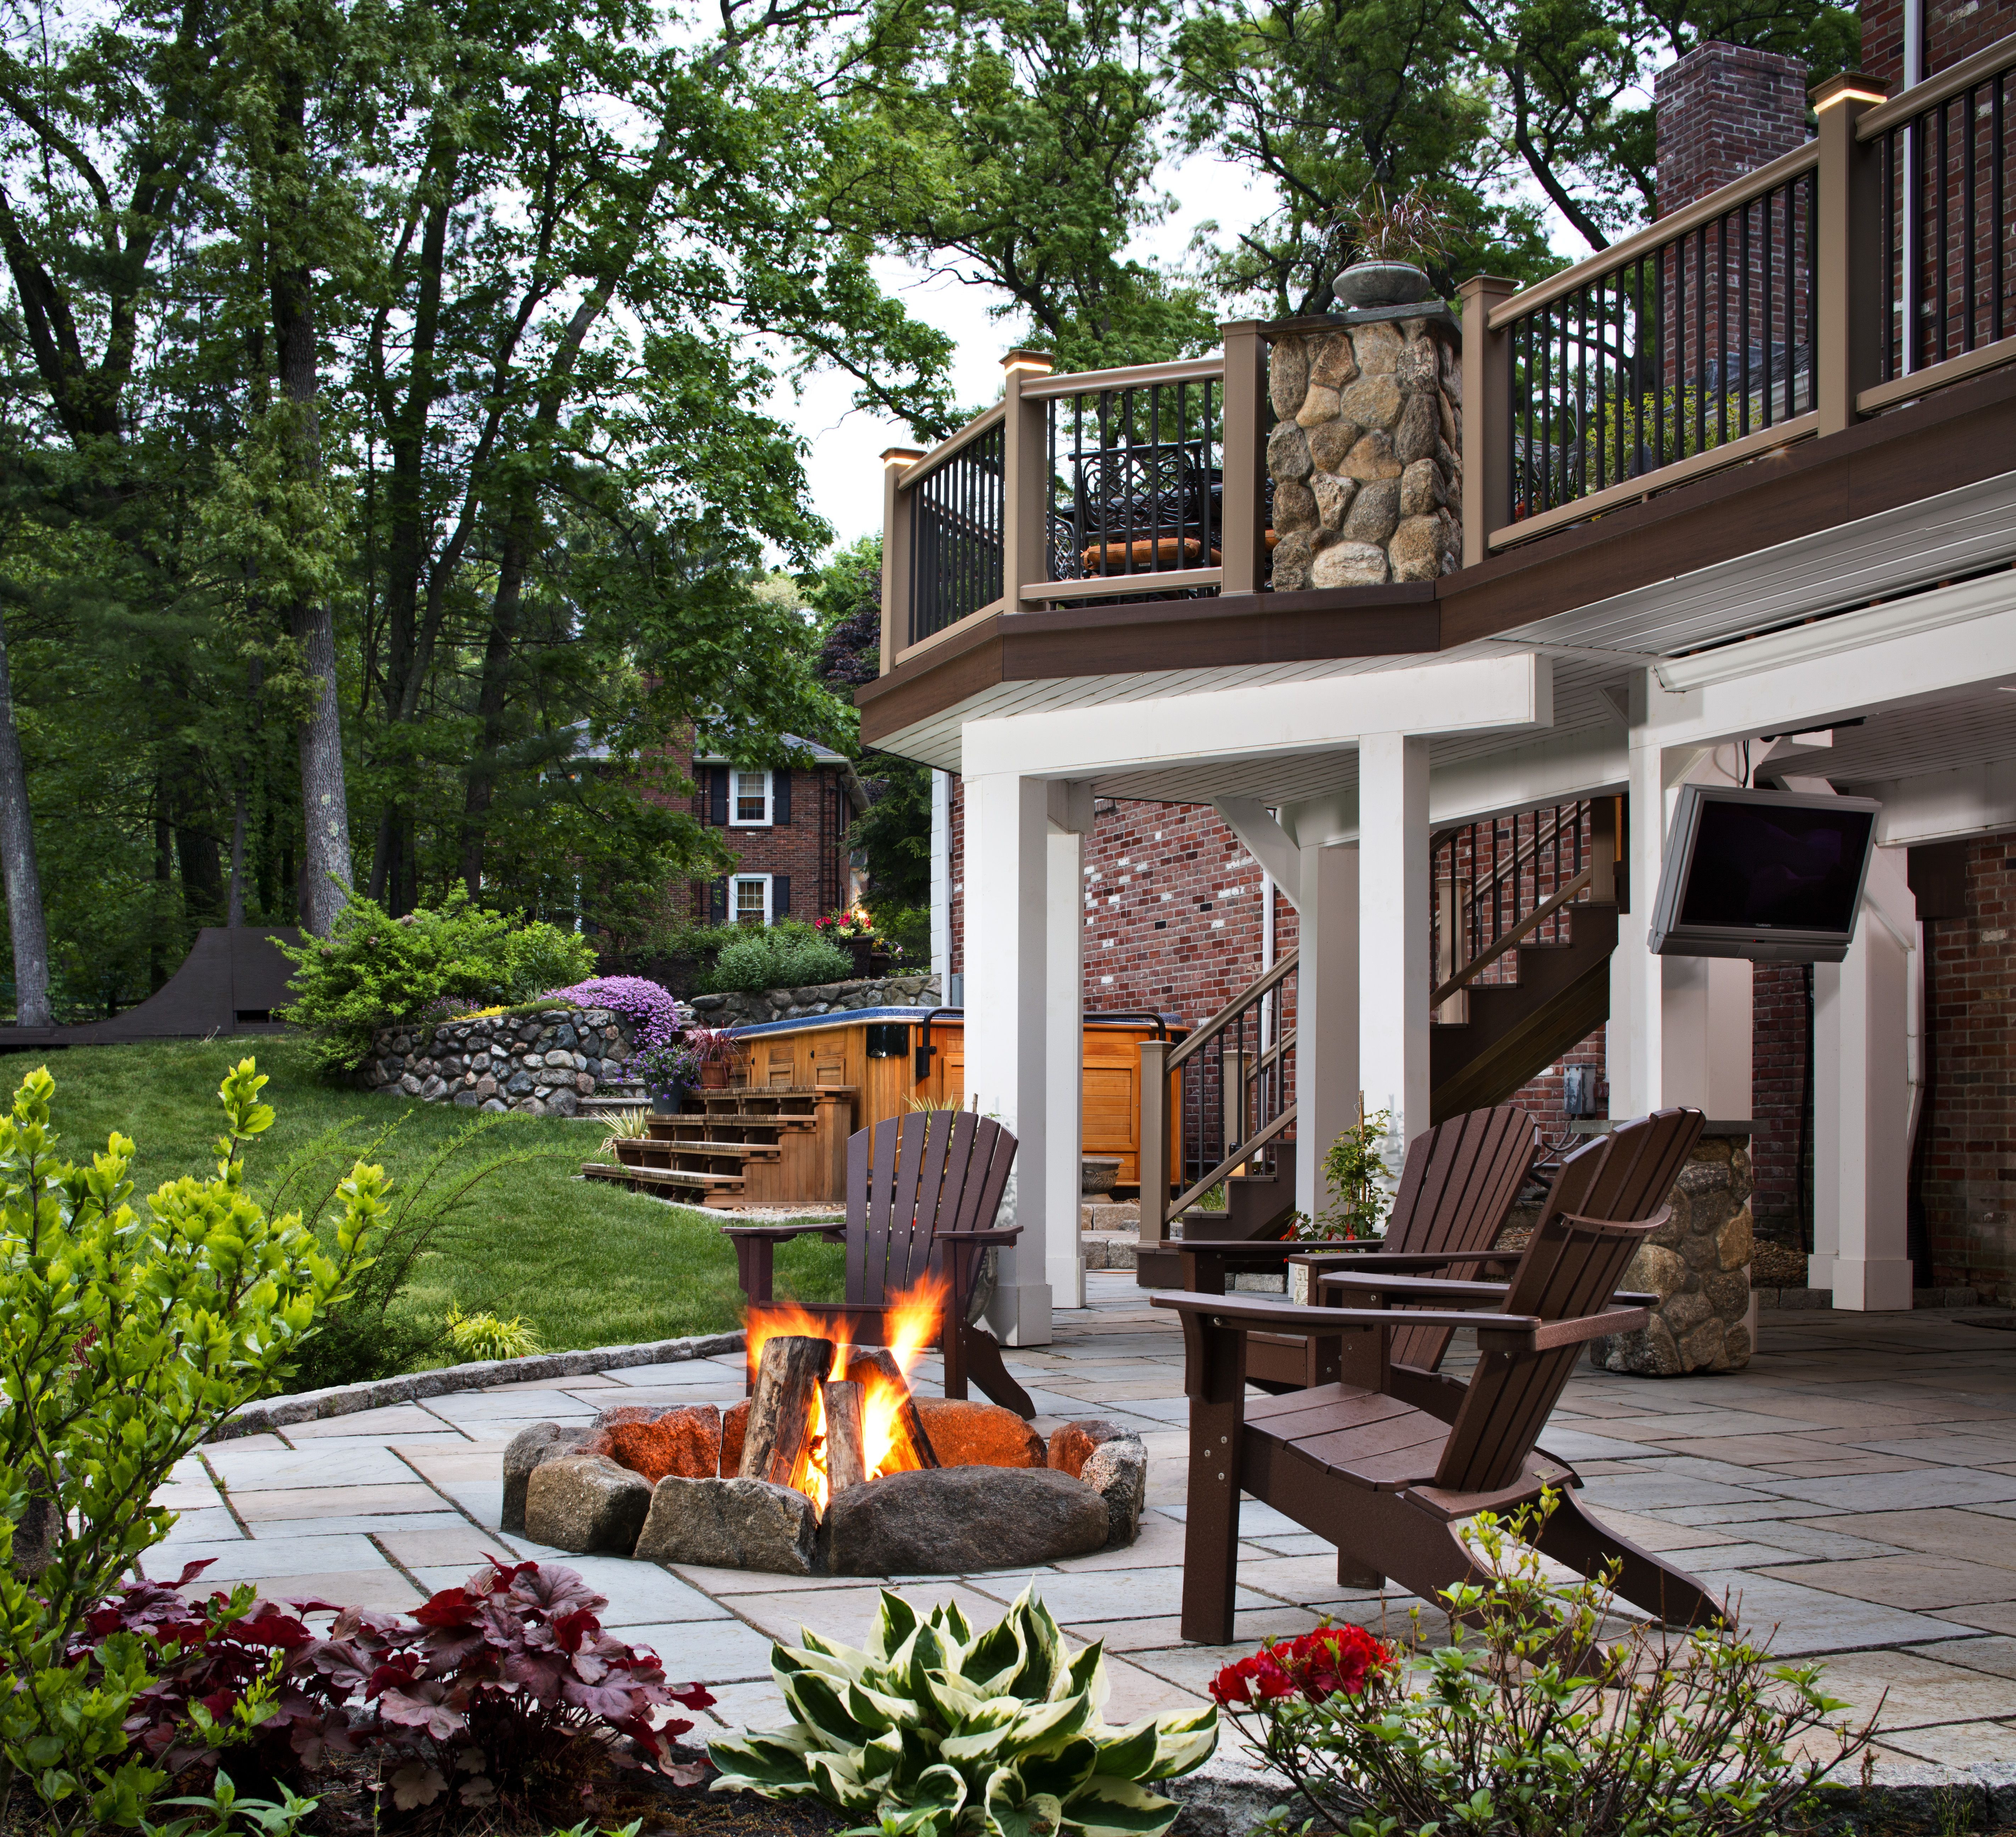 Build deck high off ground steps down to a patio google search build deck high off ground steps down to a patio google search baanklon Choice Image